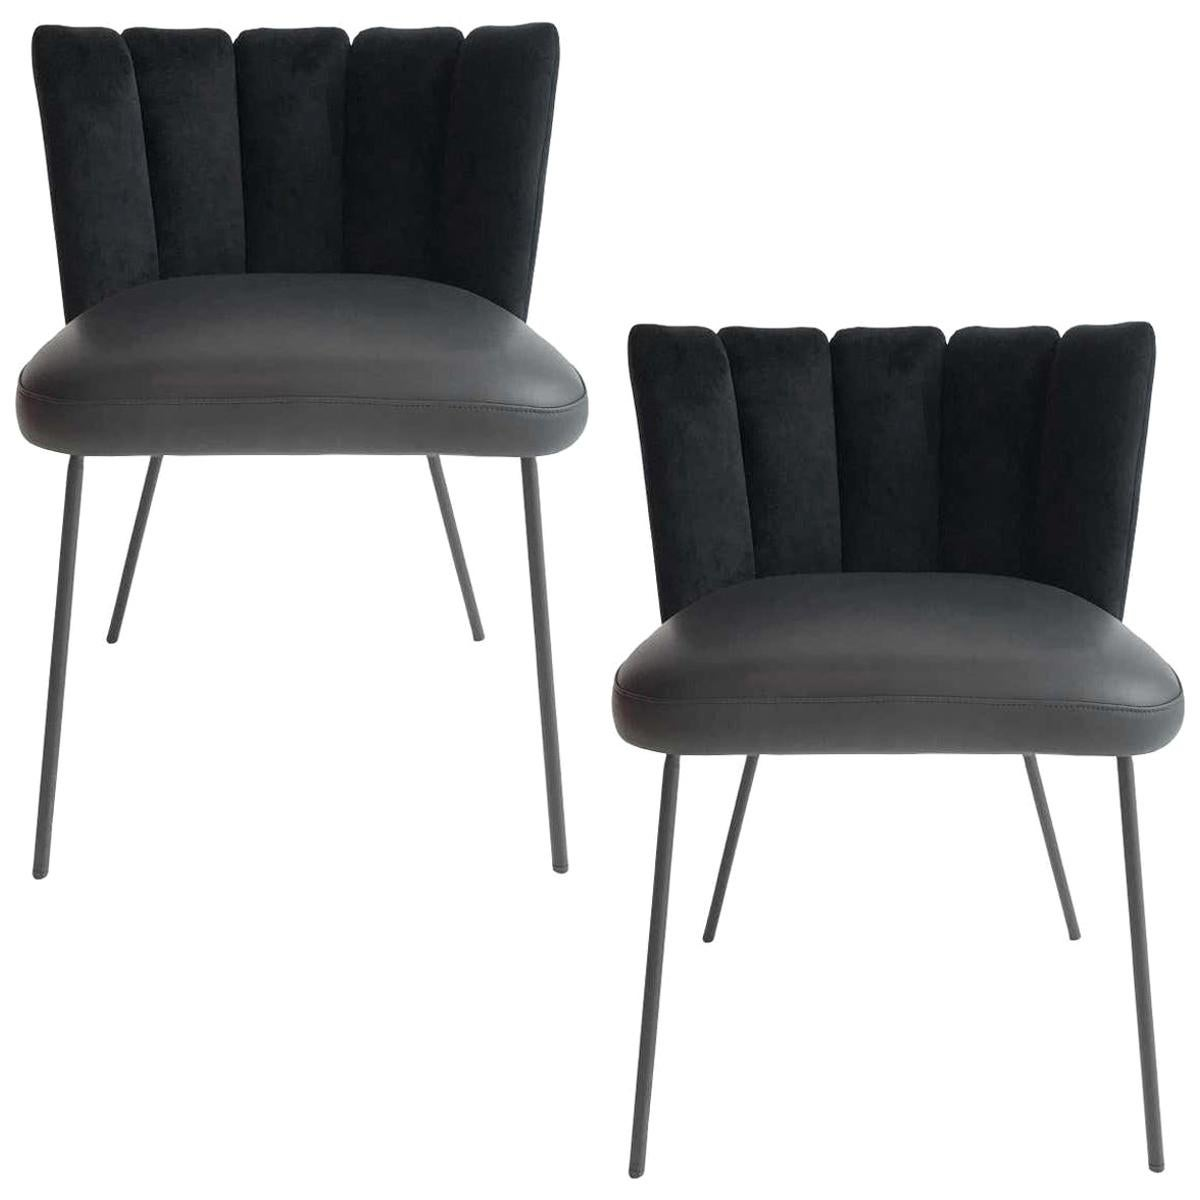 In Stock in Los Angeles, Set of 2 Black Gaia Velvet Dining Chairs